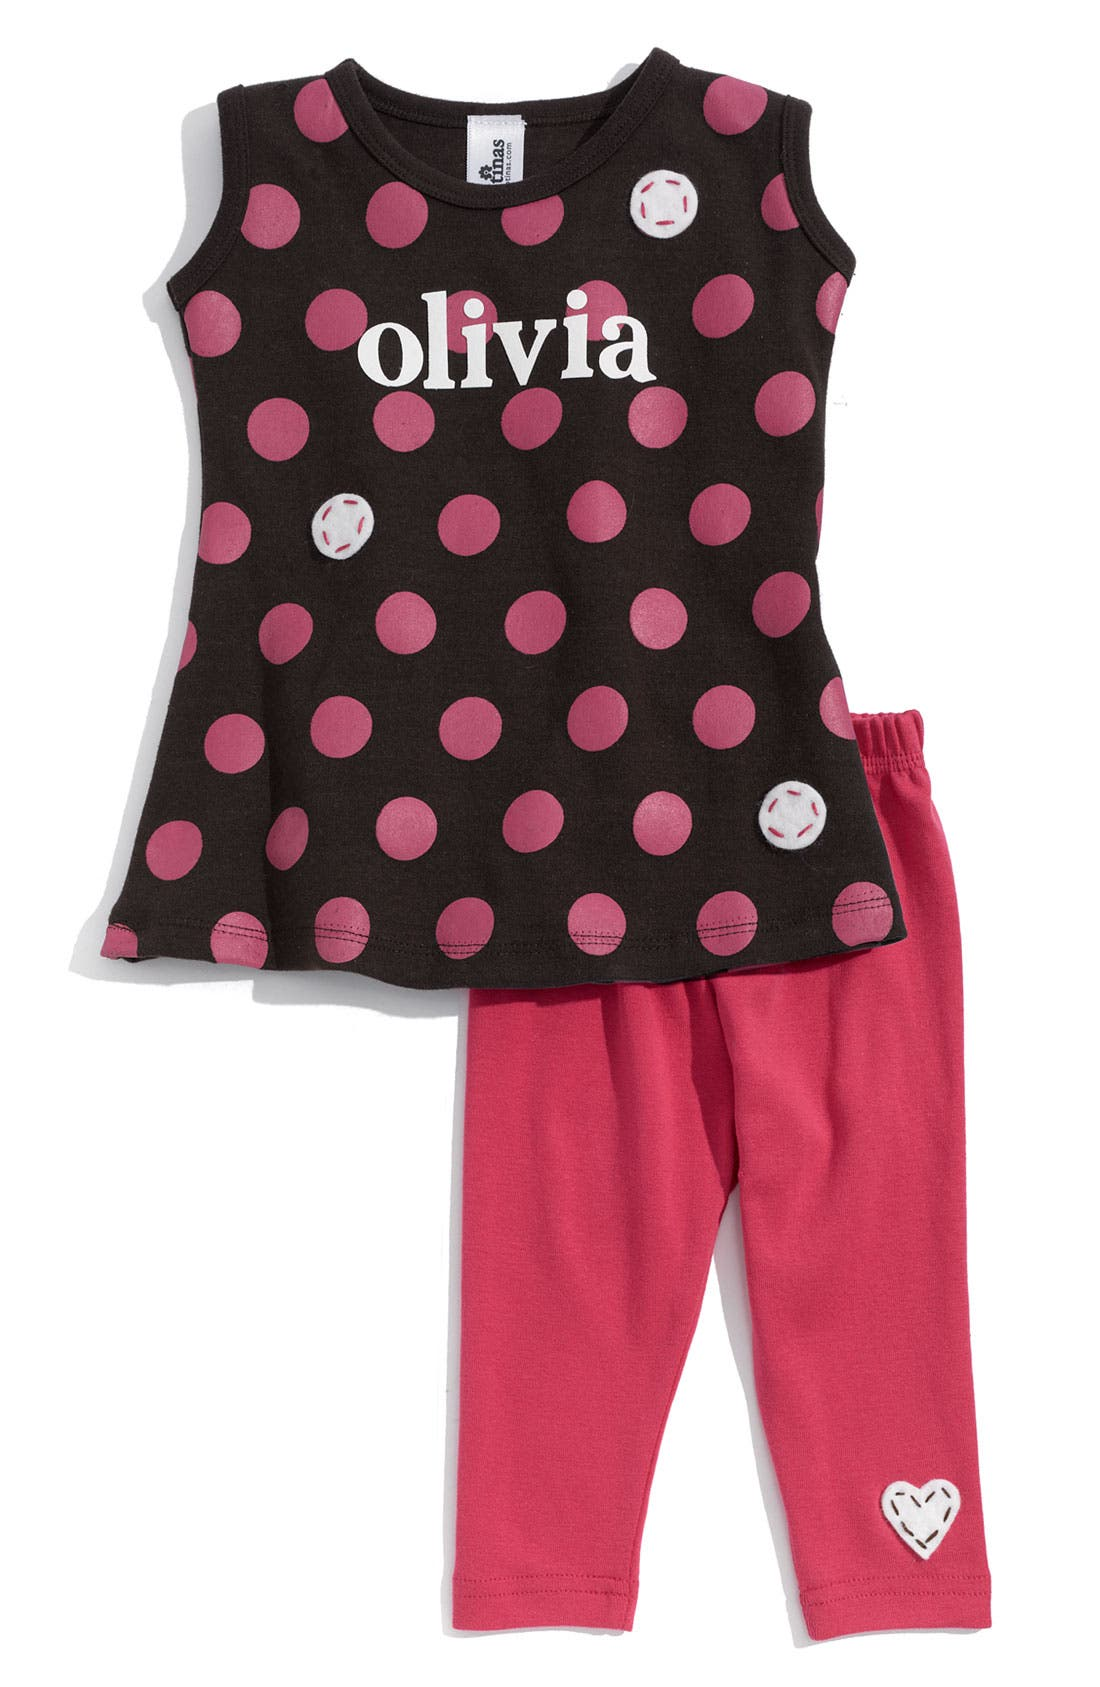 Main Image - Two Tinas Personalized Dress & Leggings Set (Baby Girls)